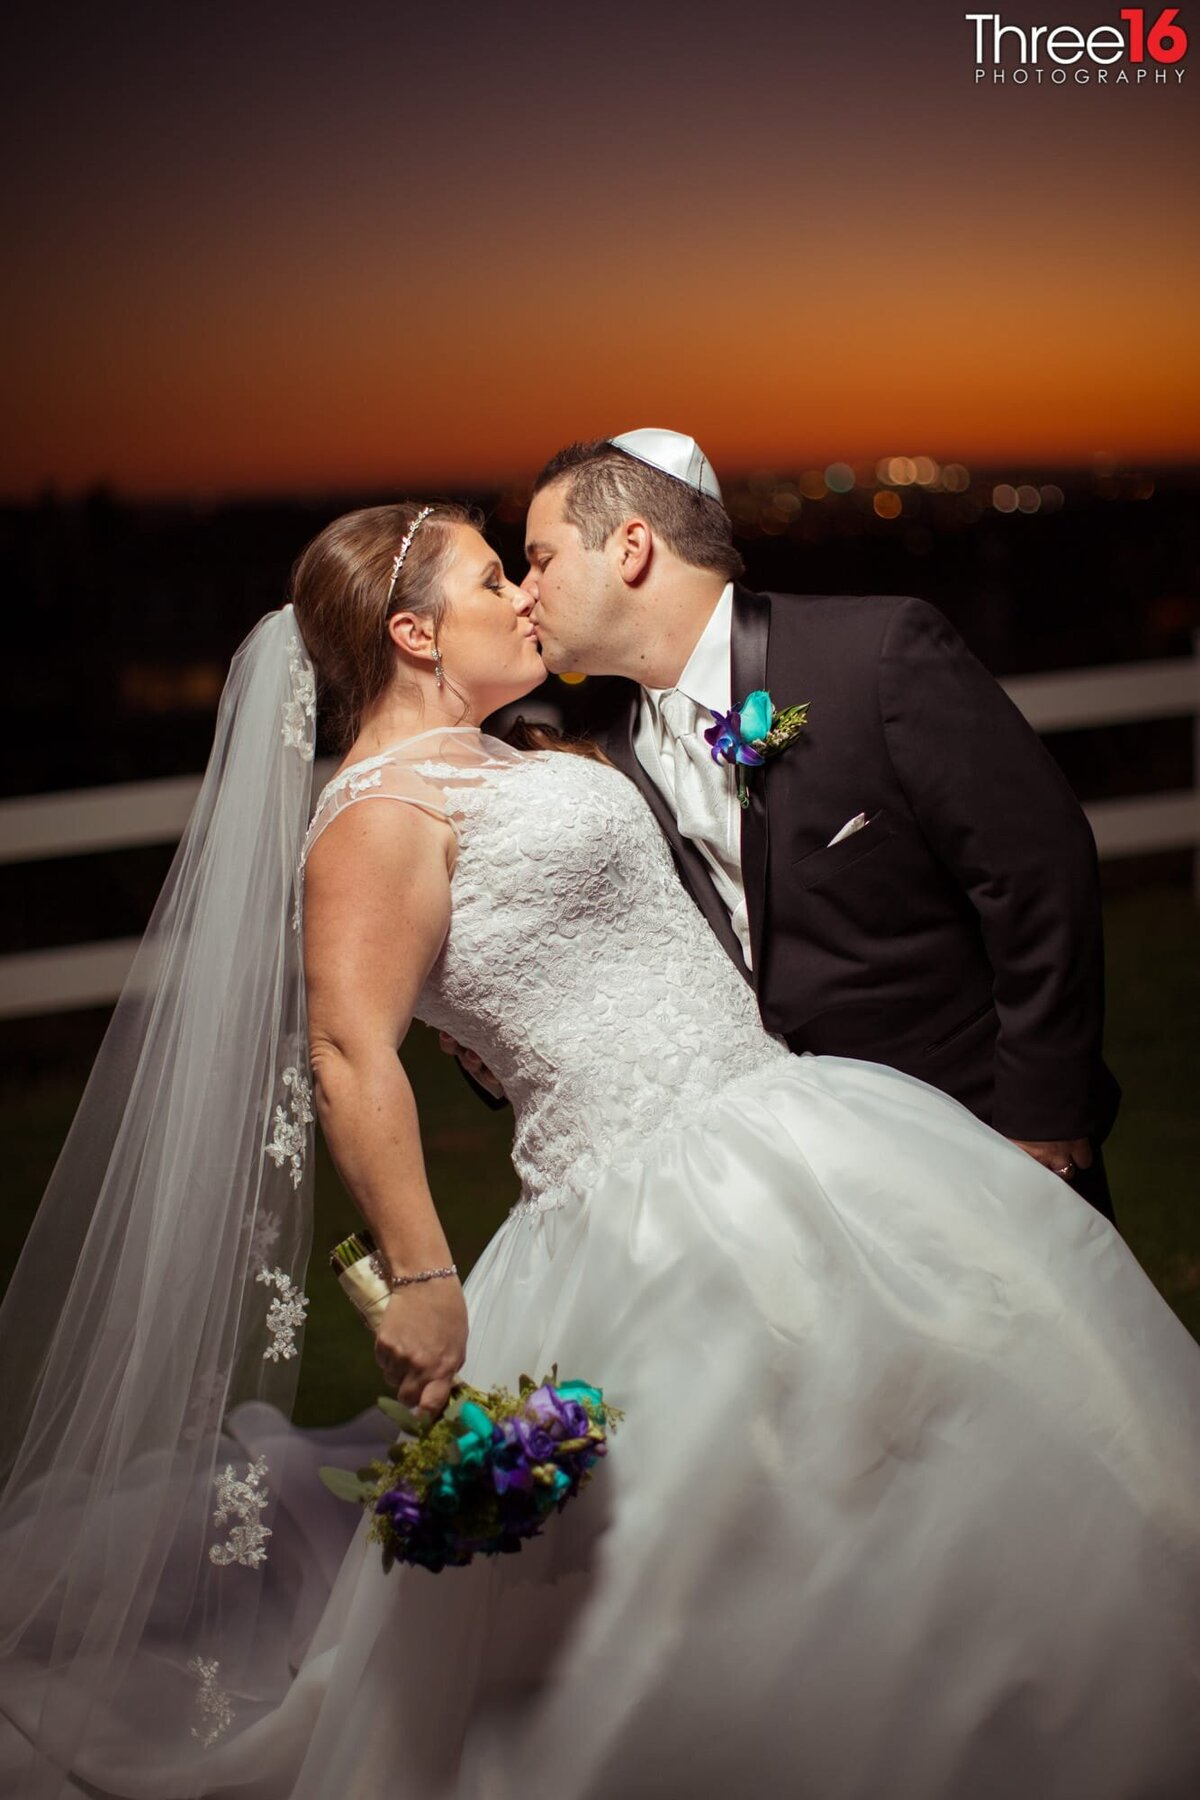 Jewish Wedding Traditions Orange County Professional Photography-3_1